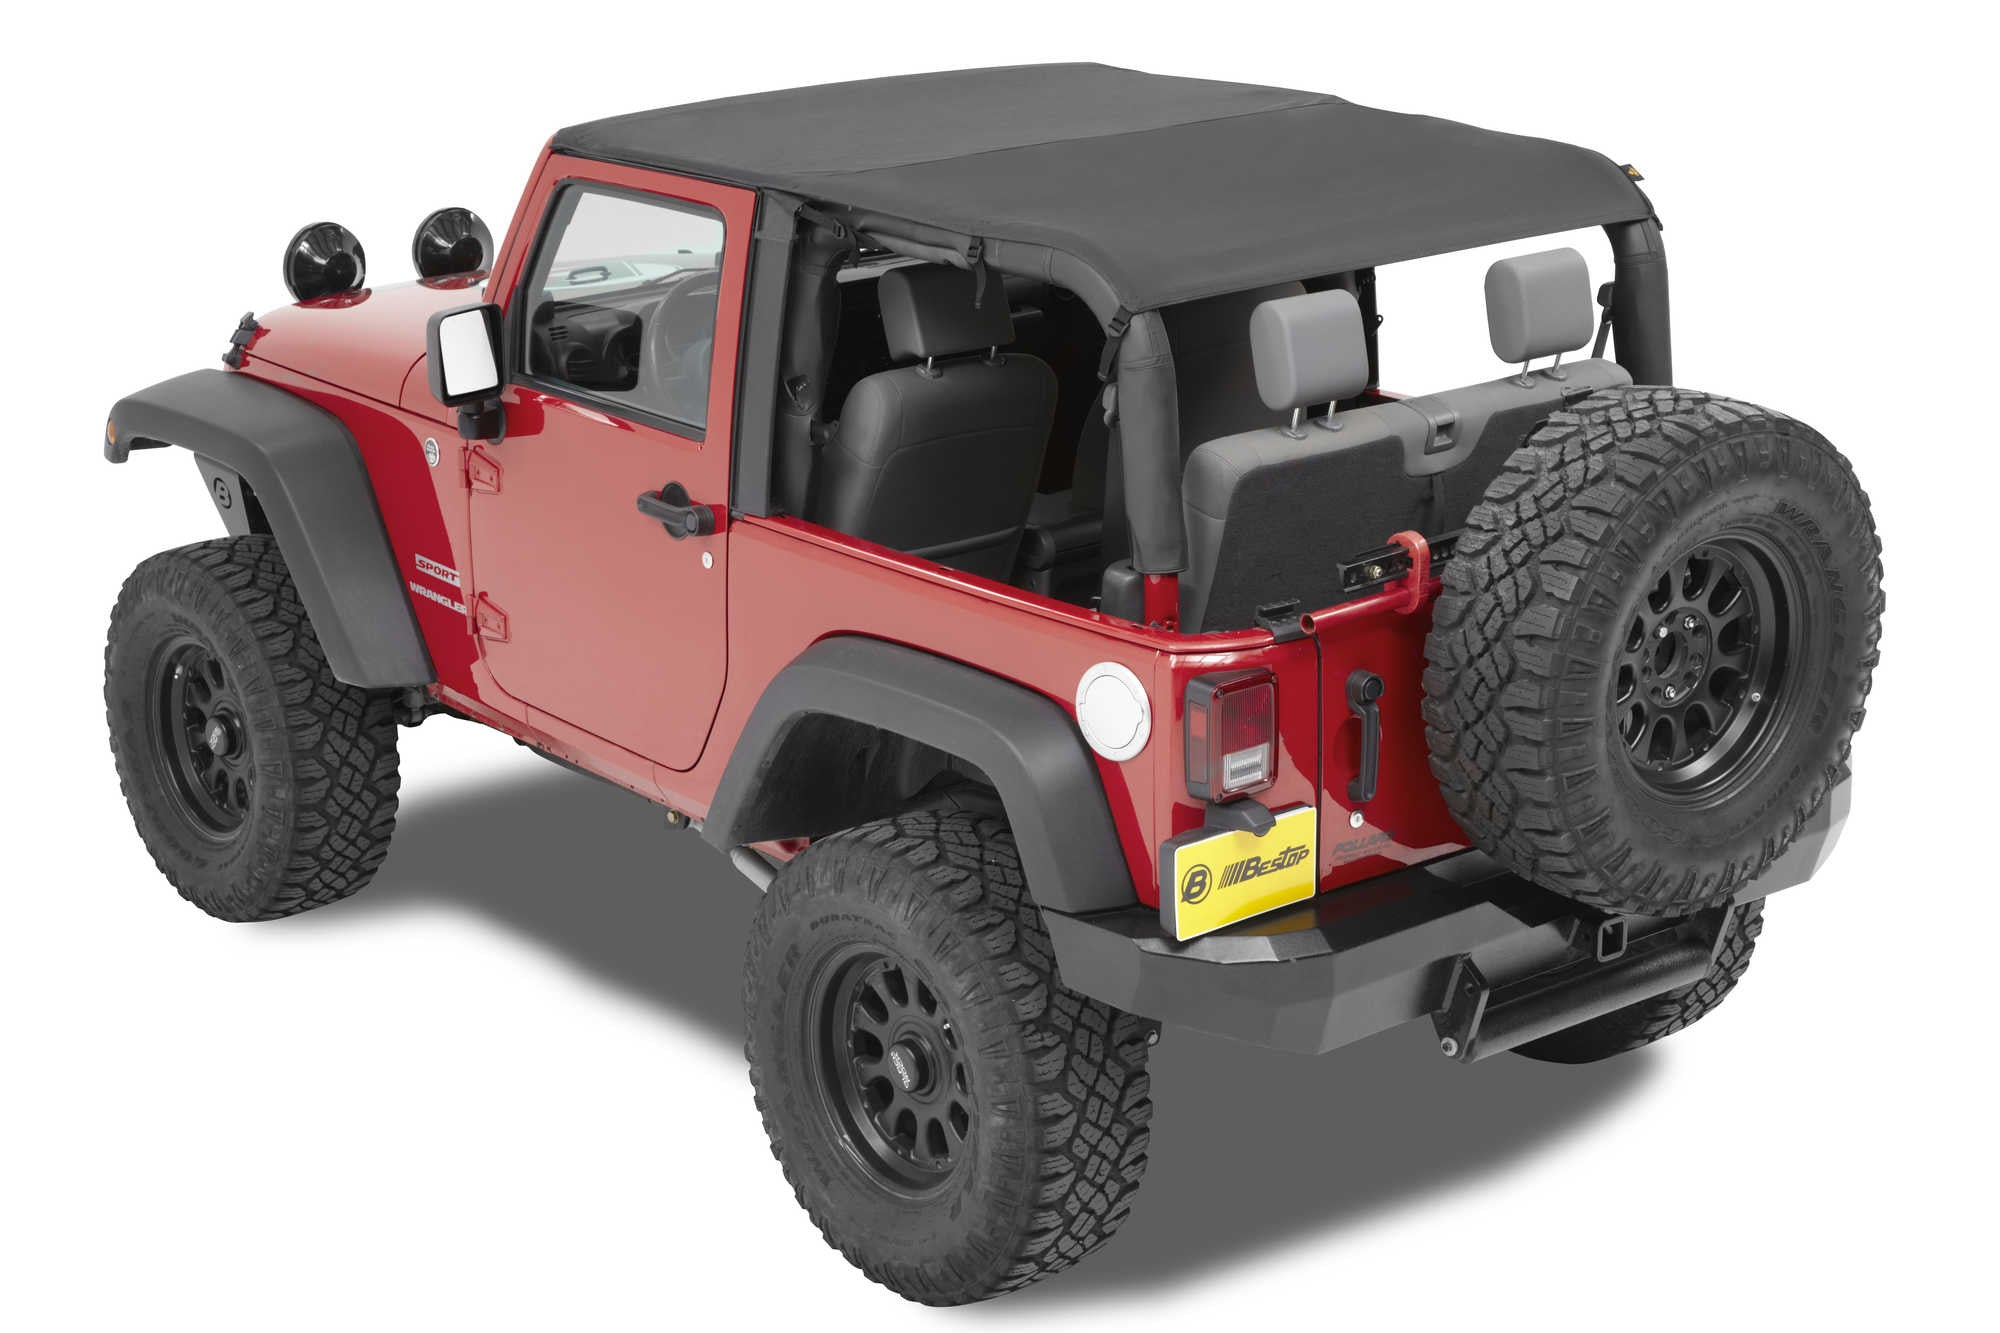 Lovely Bestop Cable Style Safari Bikini Top For 10 16 Jeep Wrangler JK 2 Door    Black Dog Offroad